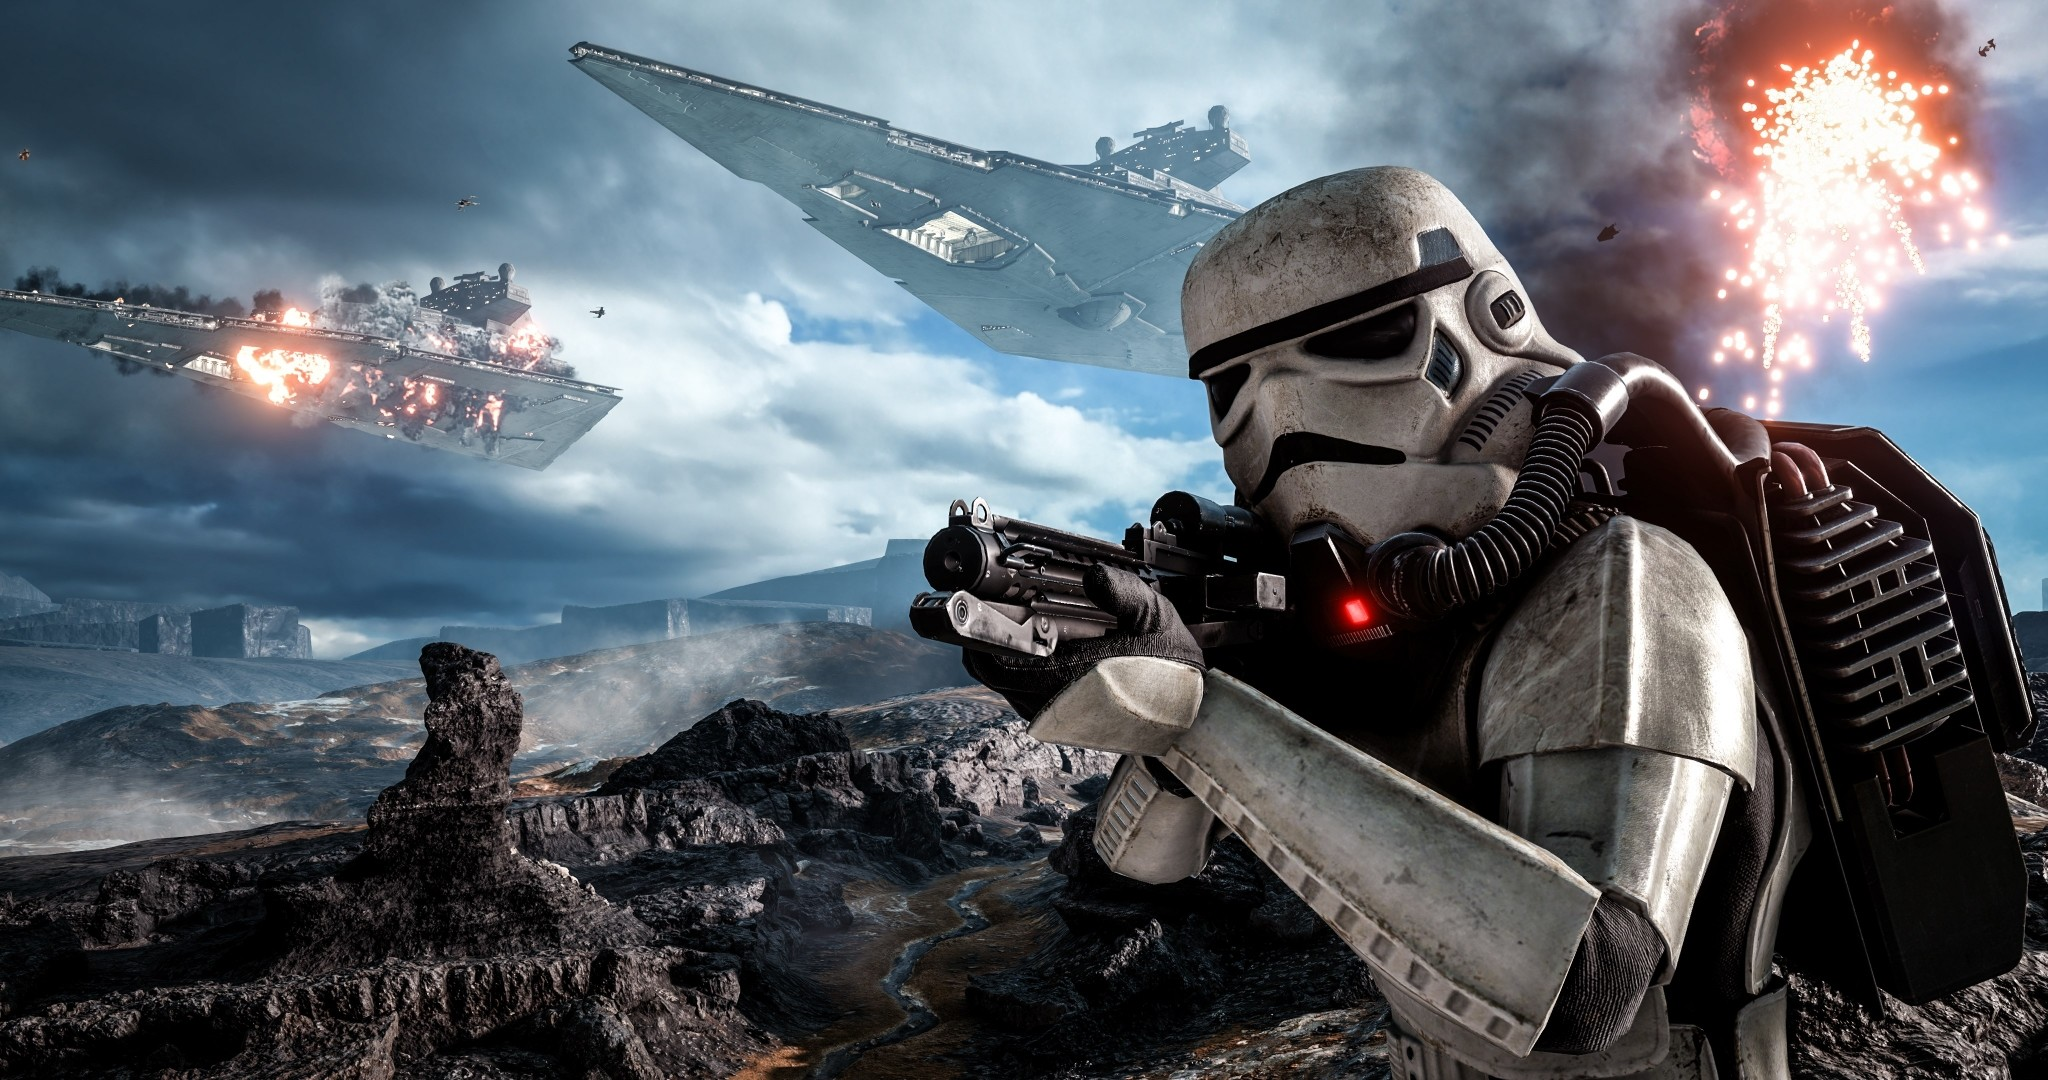 Falcon High Resolution Wallpapers: Star Wars Widescreen Wallpaper (72+ Images